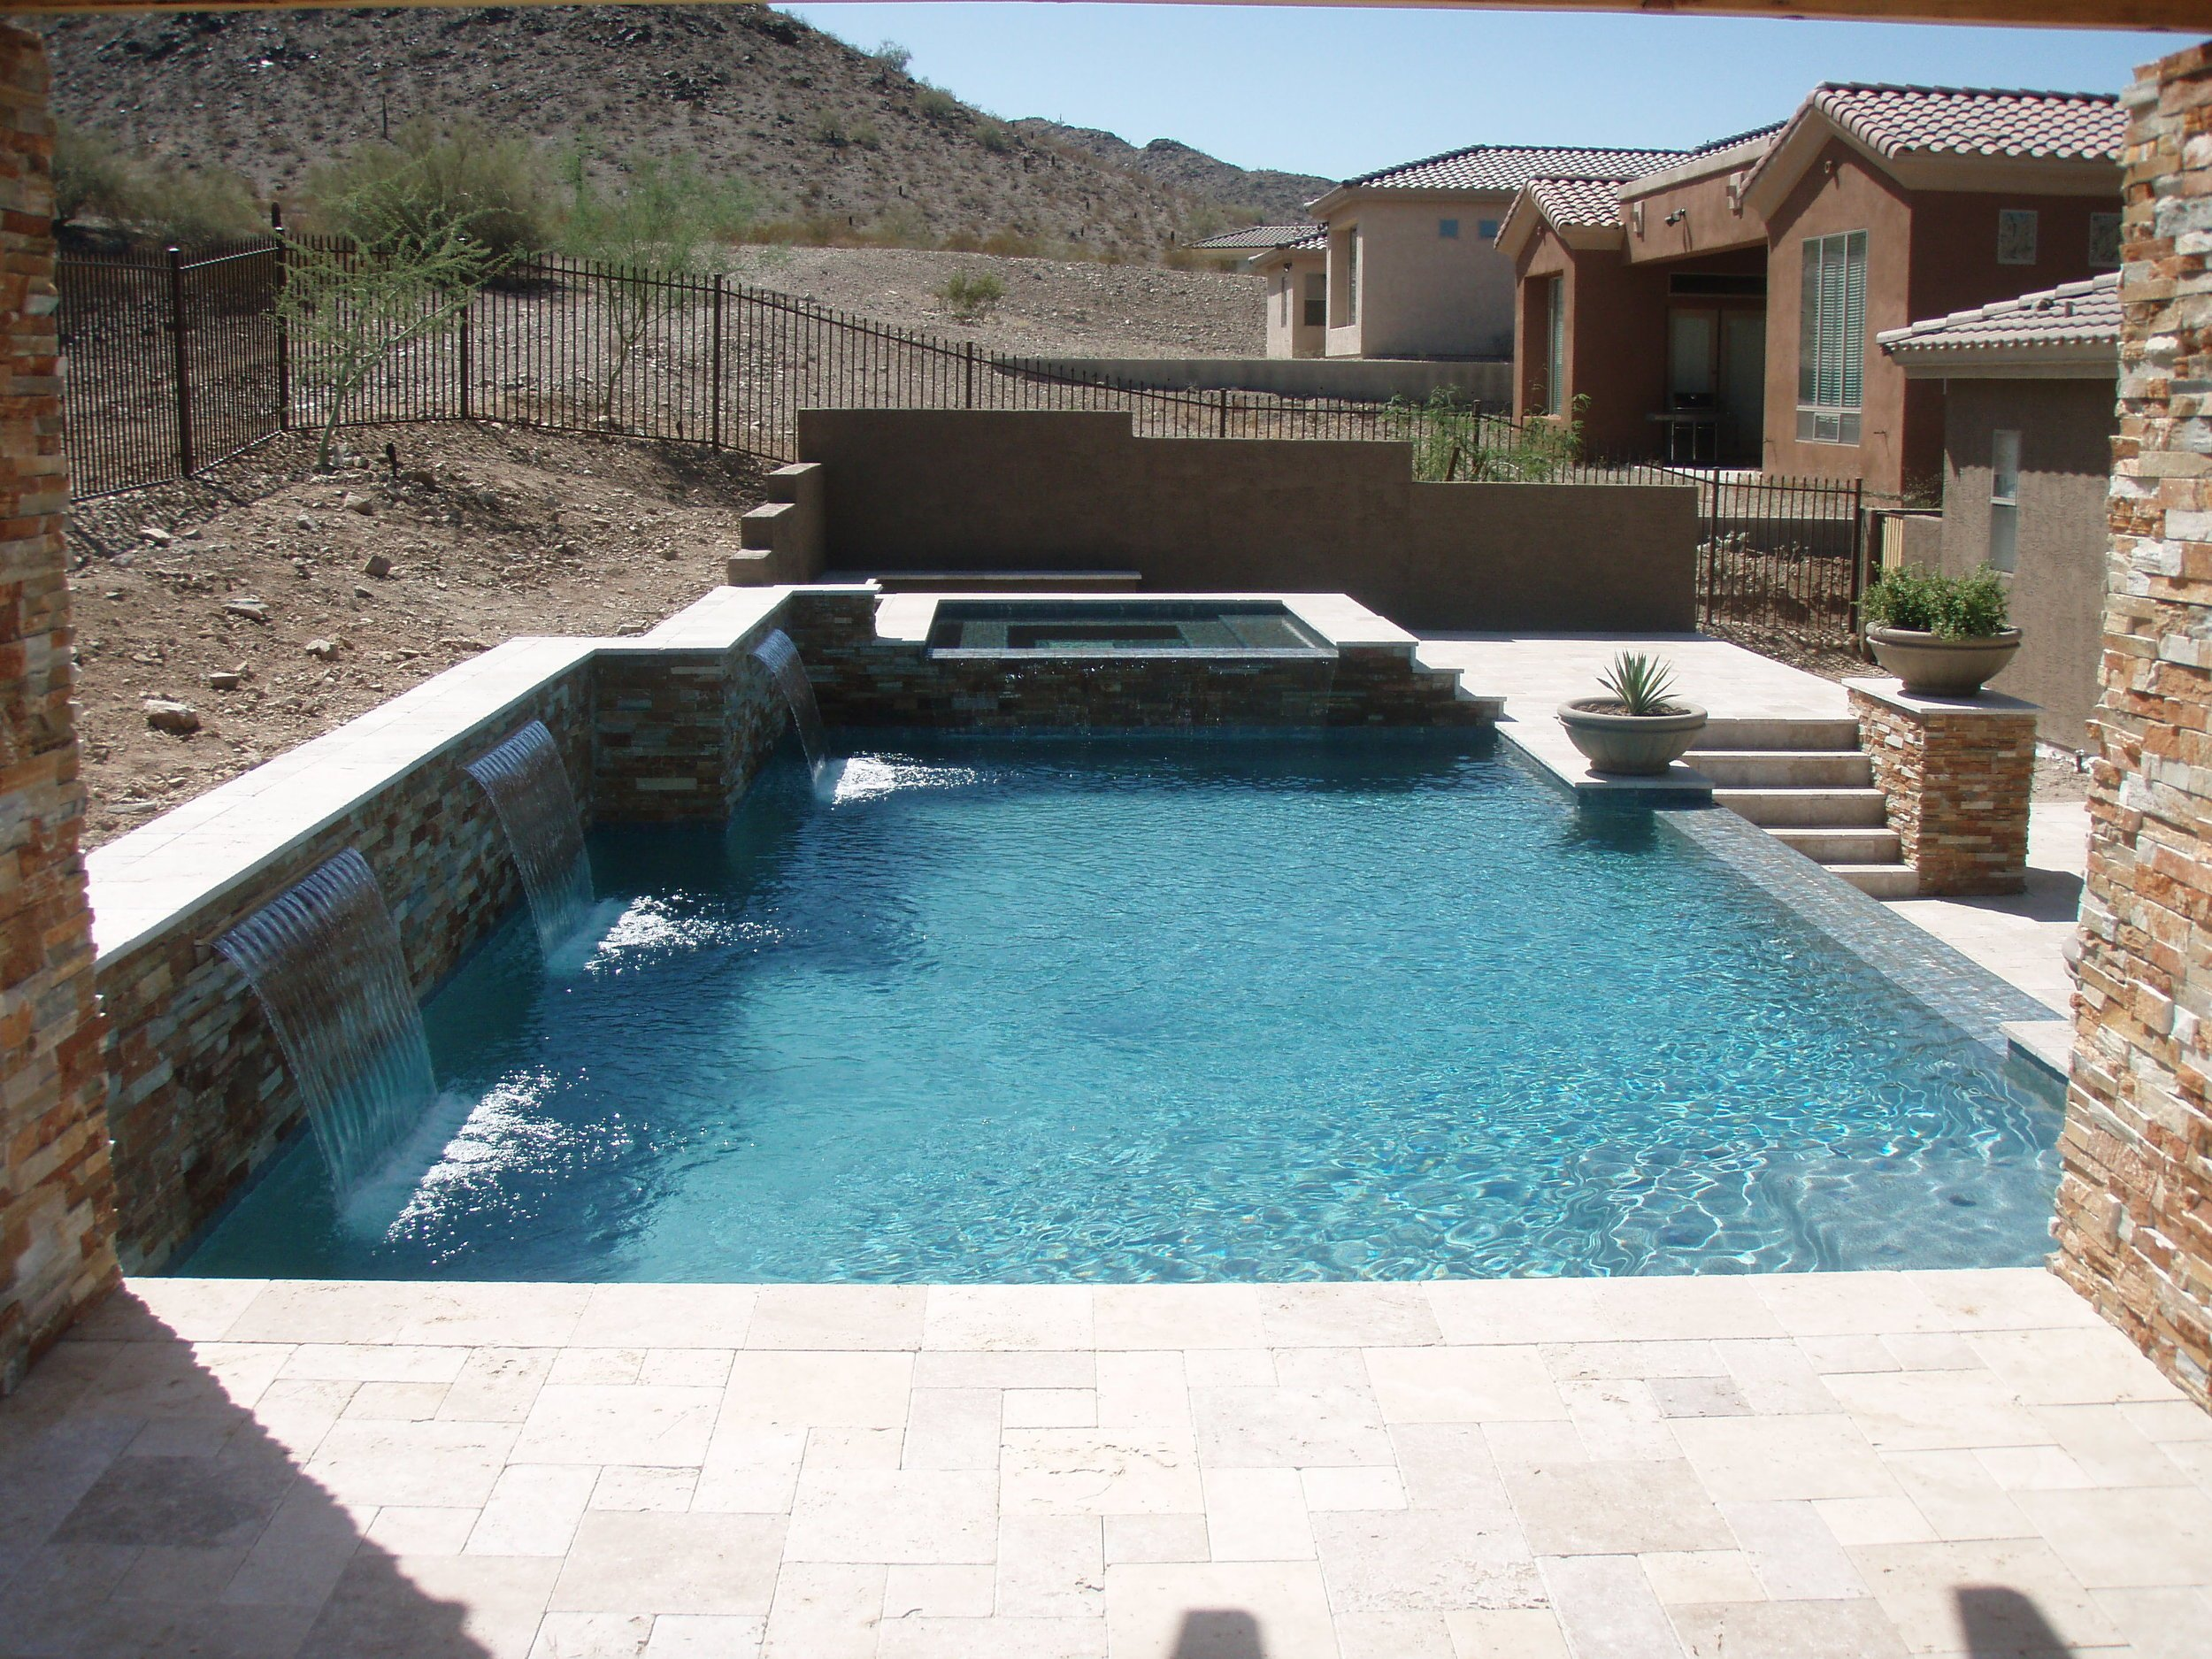 swimming pool building requirements for the city of phoenix